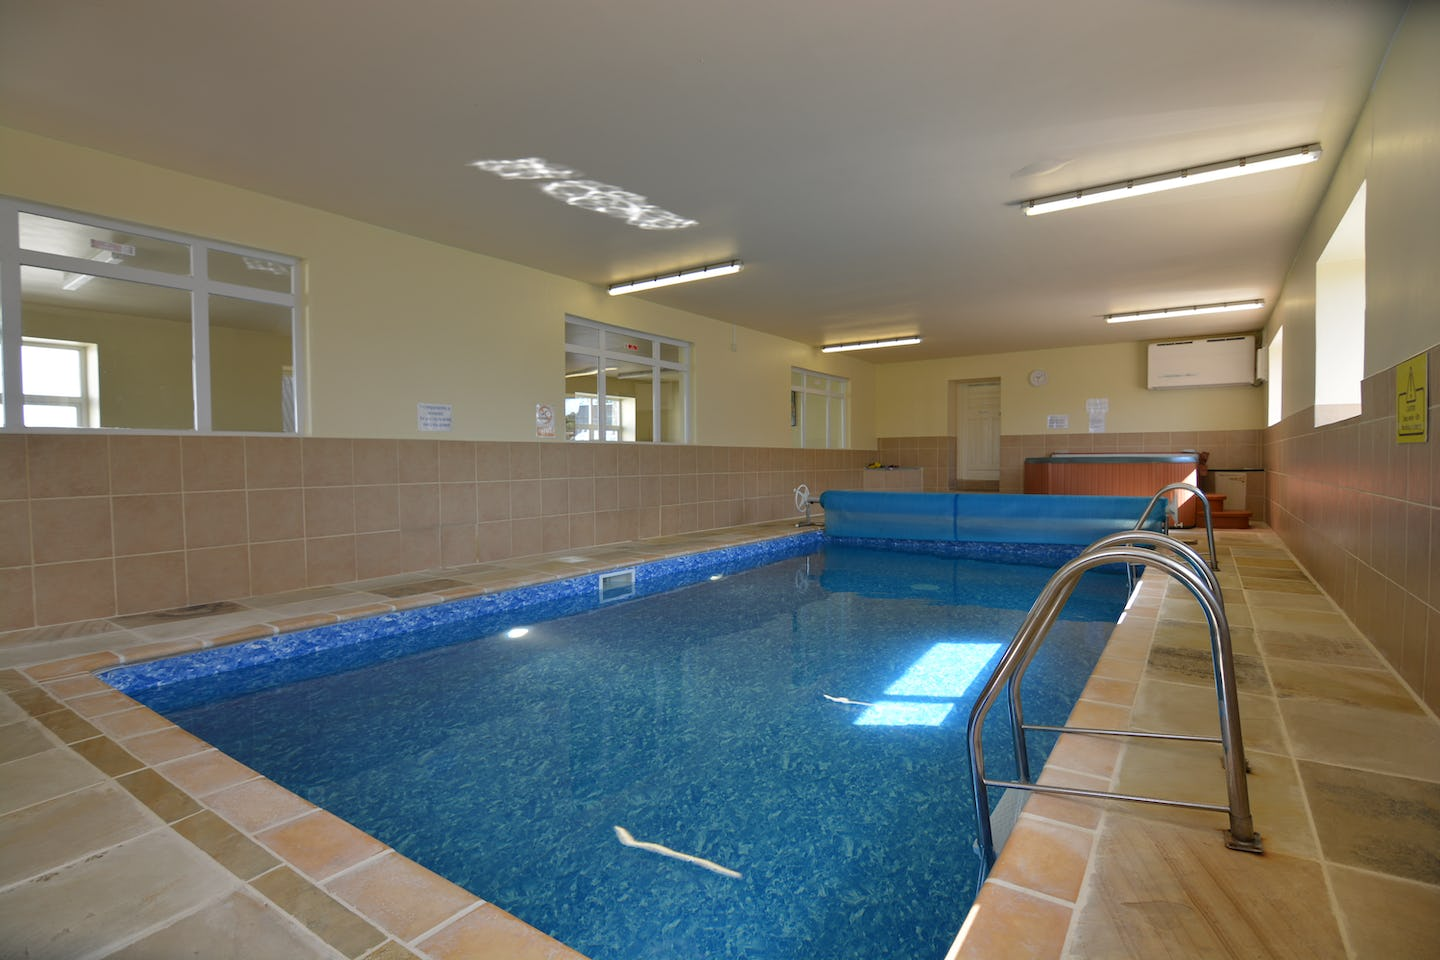 Nyth y wennol luxury holiday cottage with a shared swimming pool on penwaun farm tanglwst for Holiday cottages in wales with swimming pools